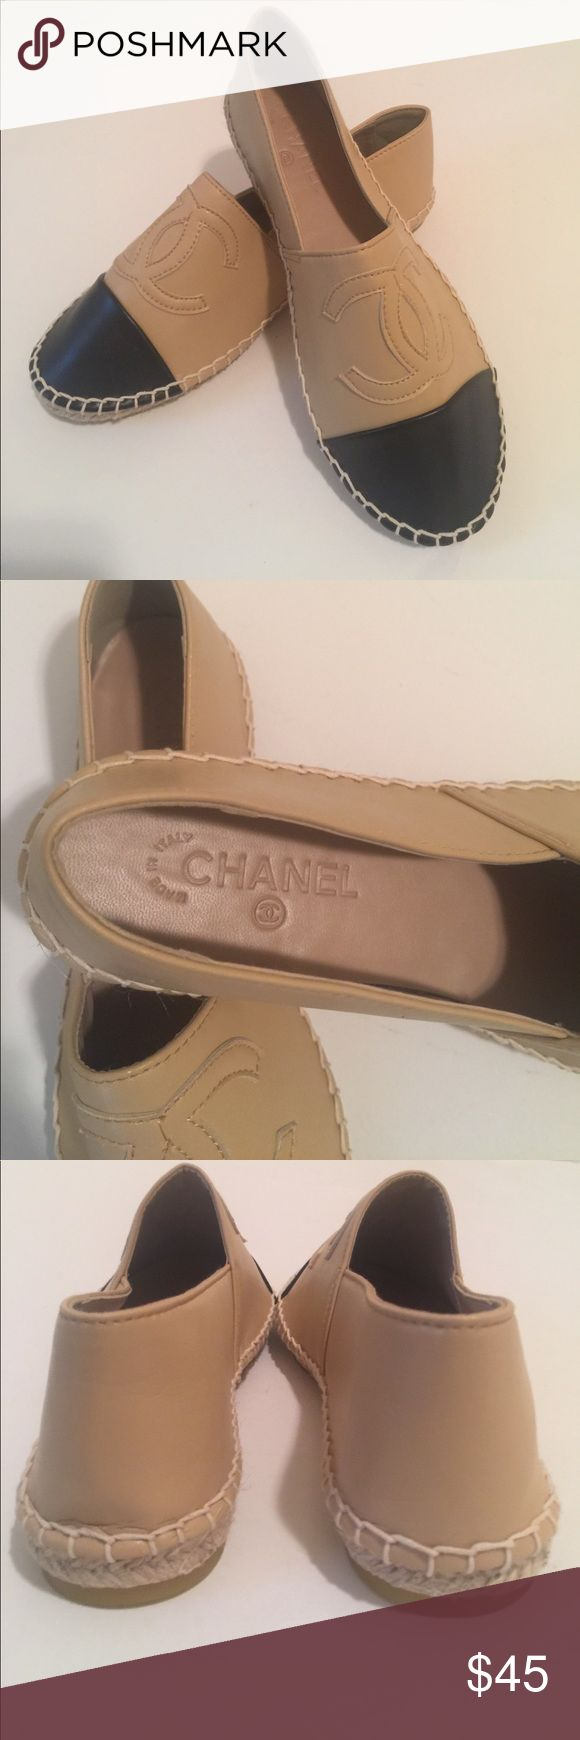 CC Fashion Espadrille Flats NWOT Chanel inspired espadrilles. Faux black & tan leather. Expand 6th photo to see size 39 at toe tip. Runs small, see measurement in photo, measure your own shoes to compare. Shoes Flats & Loafers